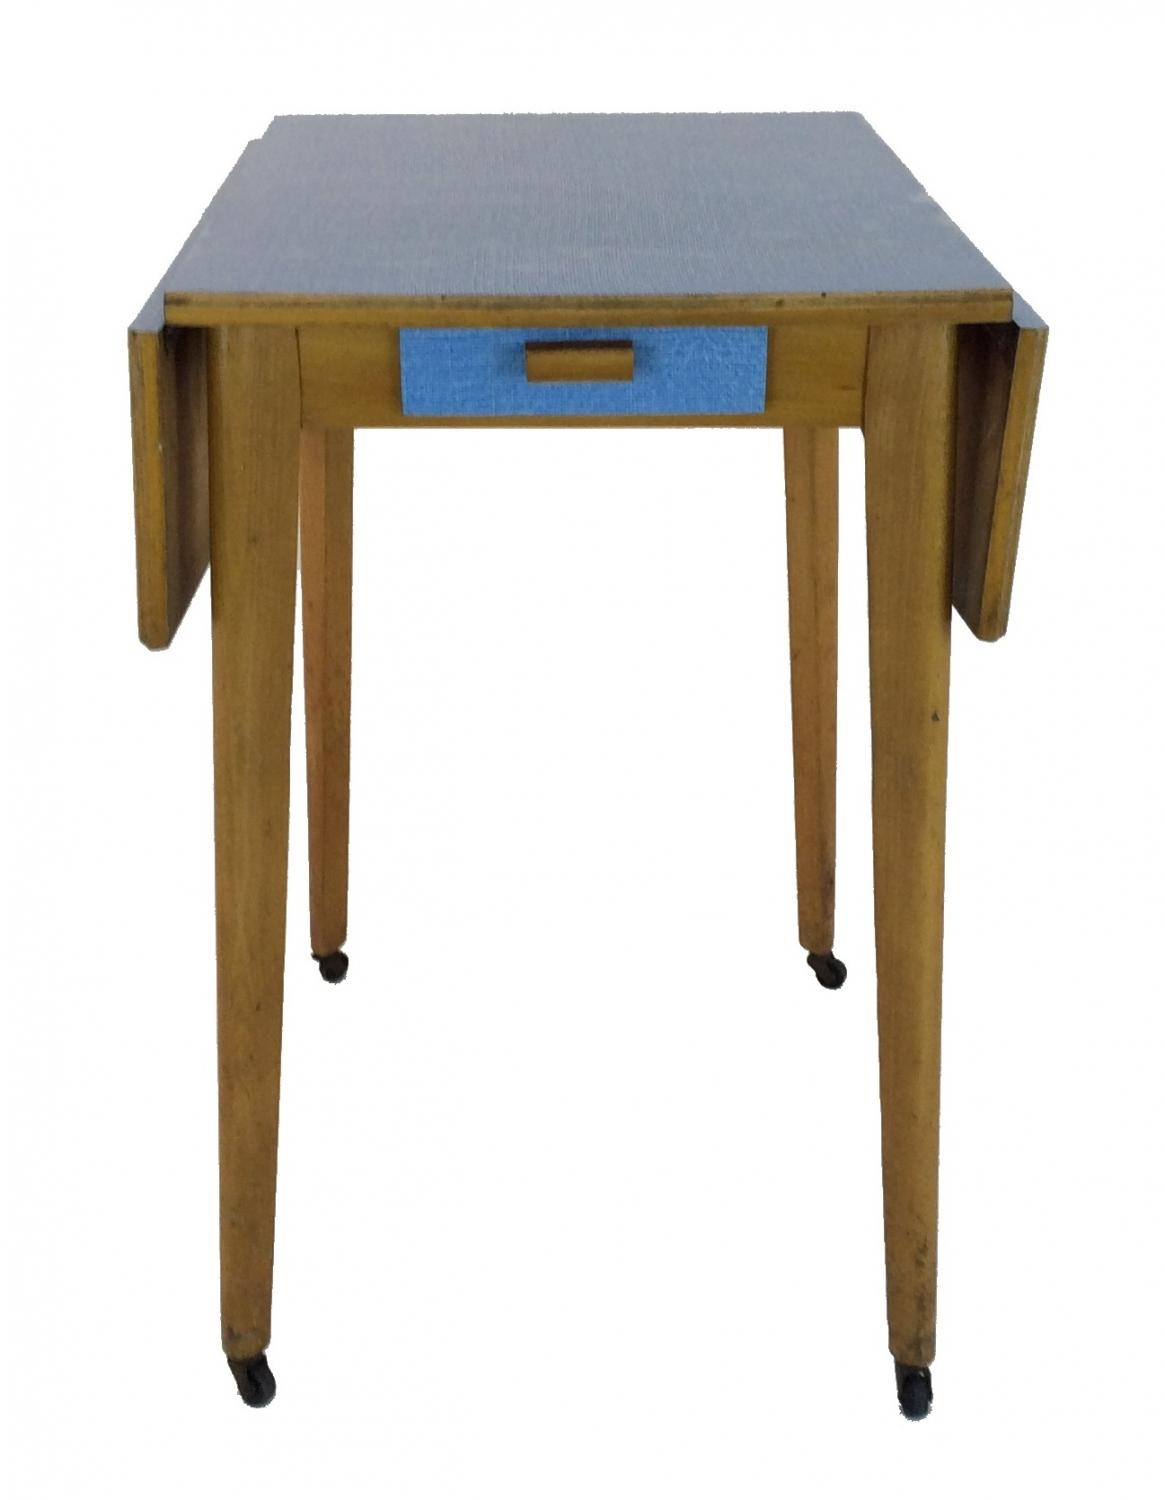 Retro Bright Blue Formica Table